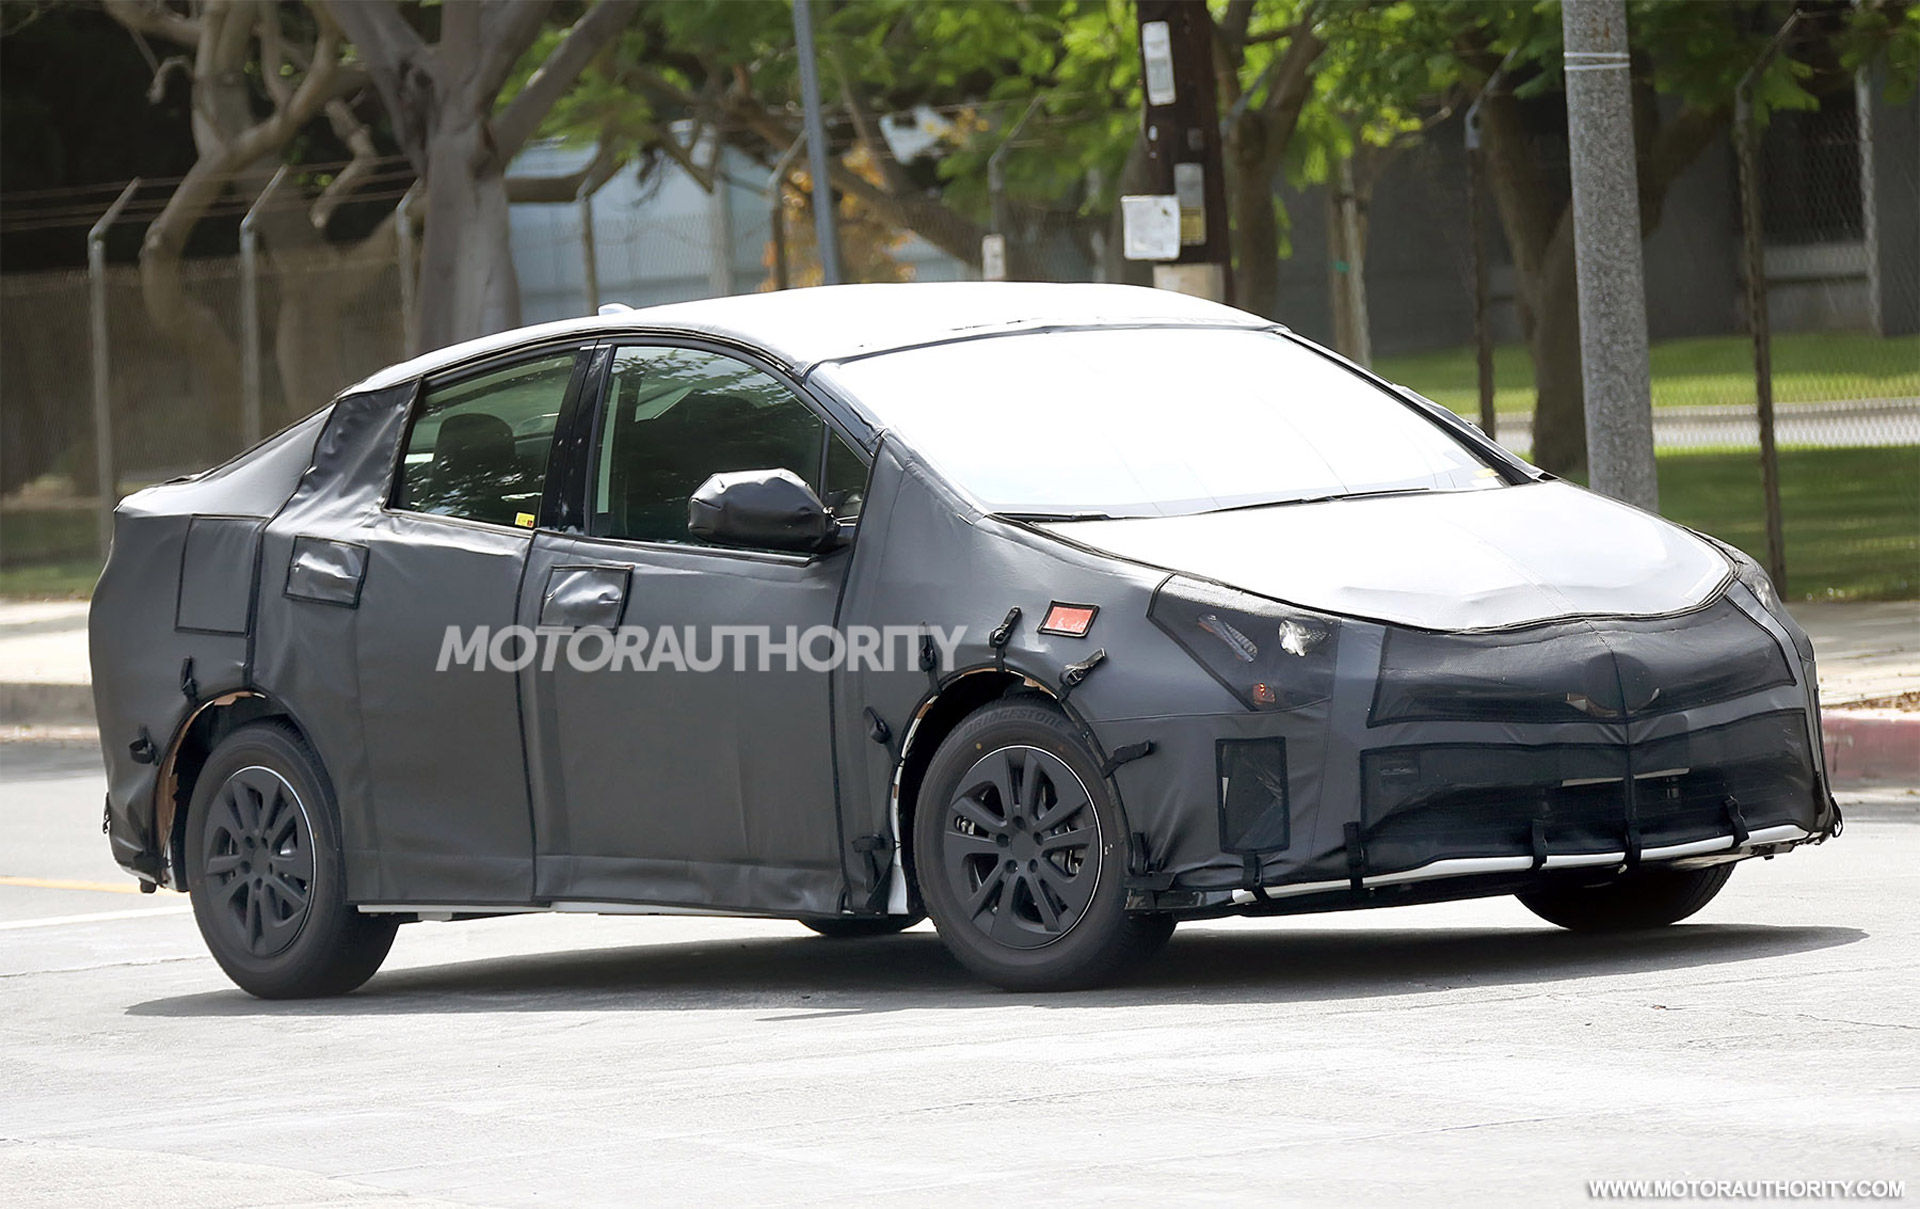 92 All New Spy Shots Toyota Prius Pricing